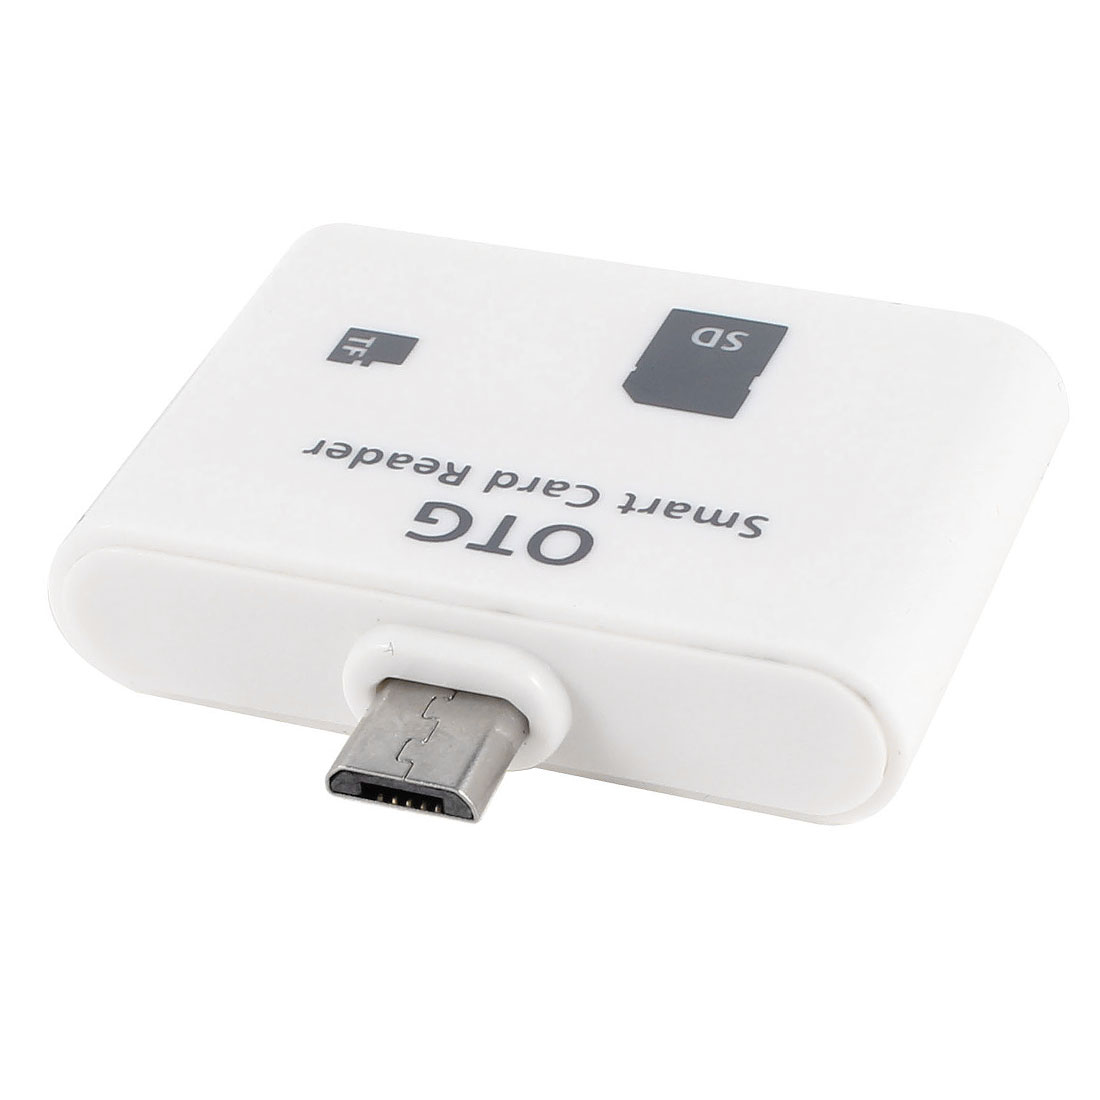 White OTG Smart Phone Pad Micro USB SD T-Flash Card Reader